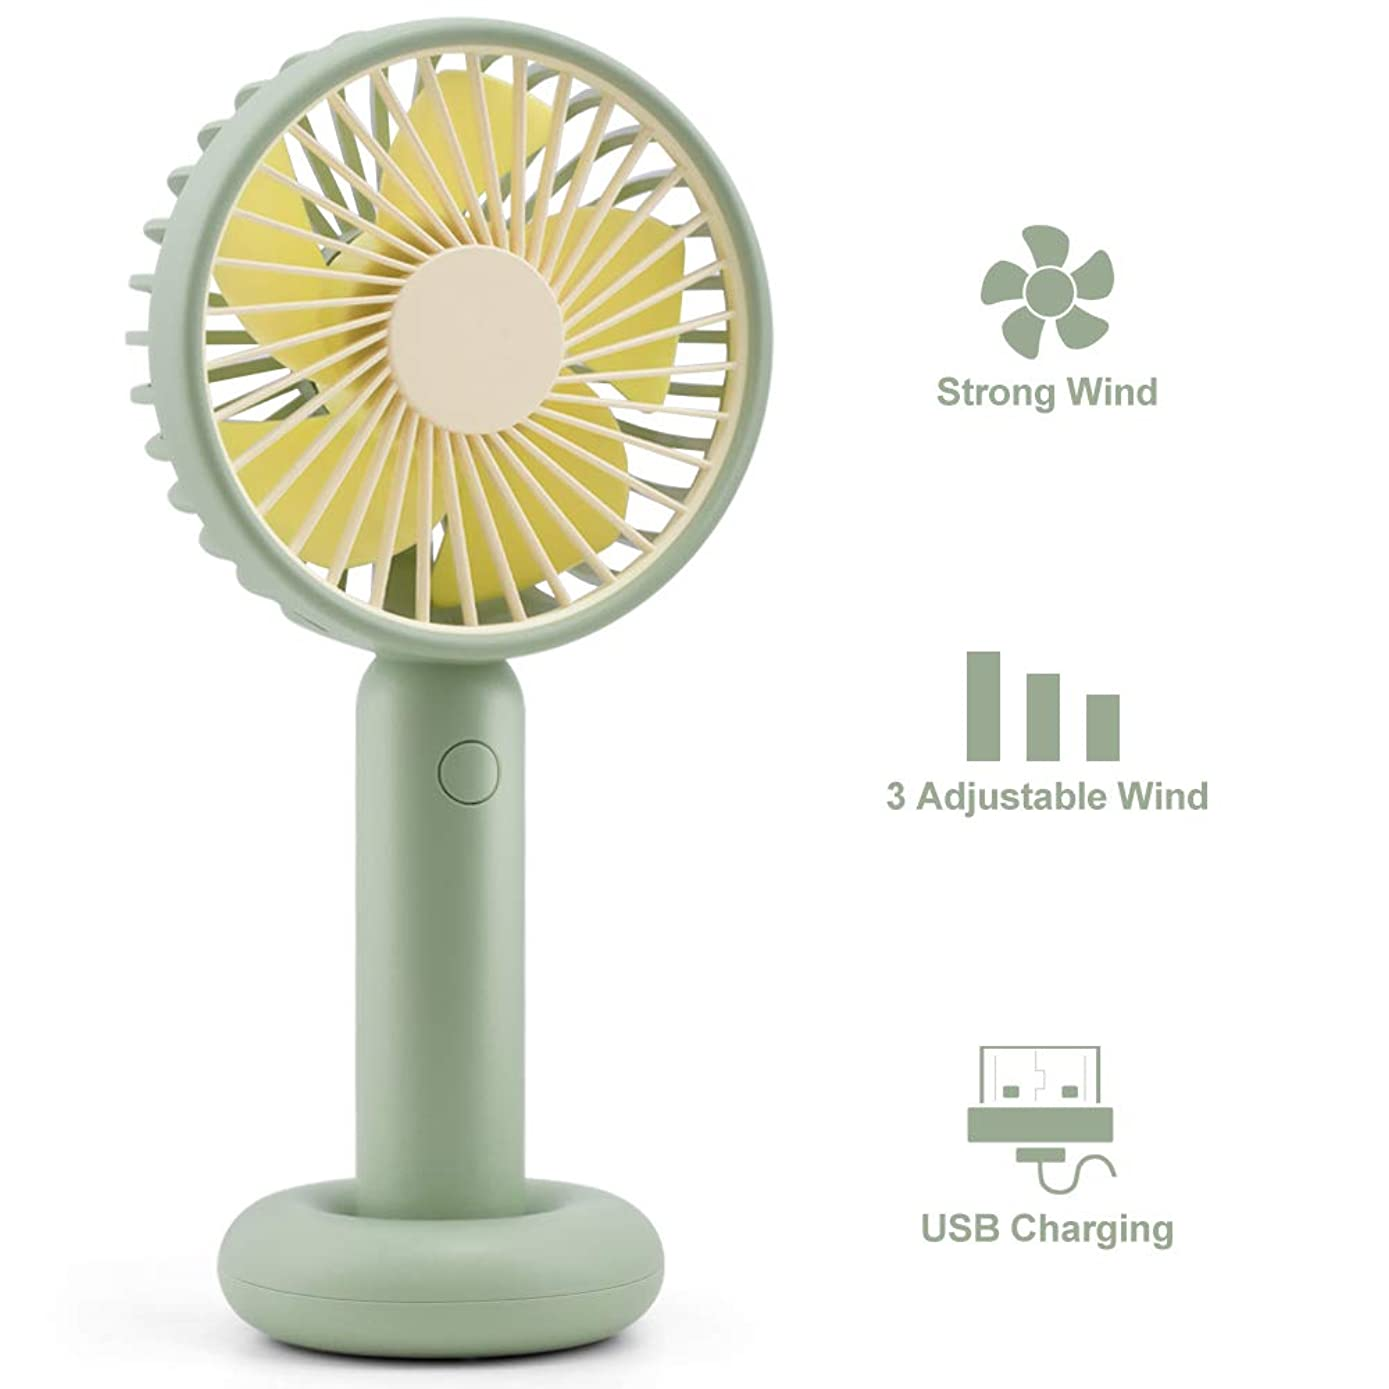 Mini Handheld Electric Fan -YIVIDA Portable Personal Outdoor Fan with USB Rechargeable Battery Operated -Desk Stroller Table Fan Long Working Time for Outdoor Office Home Camping Traveling